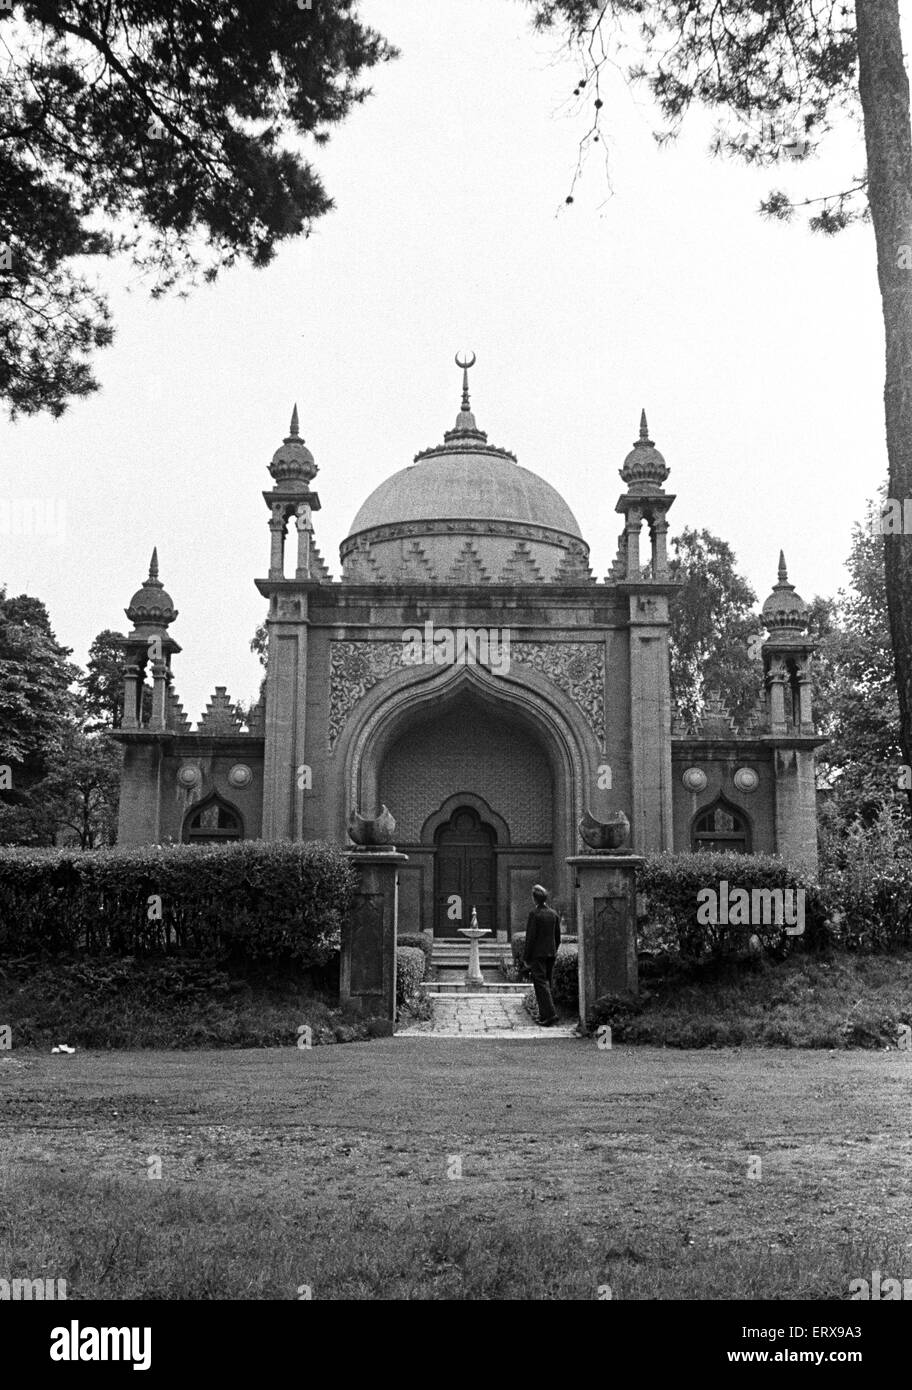 The Shah Jahan Mosque in Woking, Surrey.  The Mosque, built in 1889 by Dr Gottleib Wilhelm Leitner, was the first - Stock Image